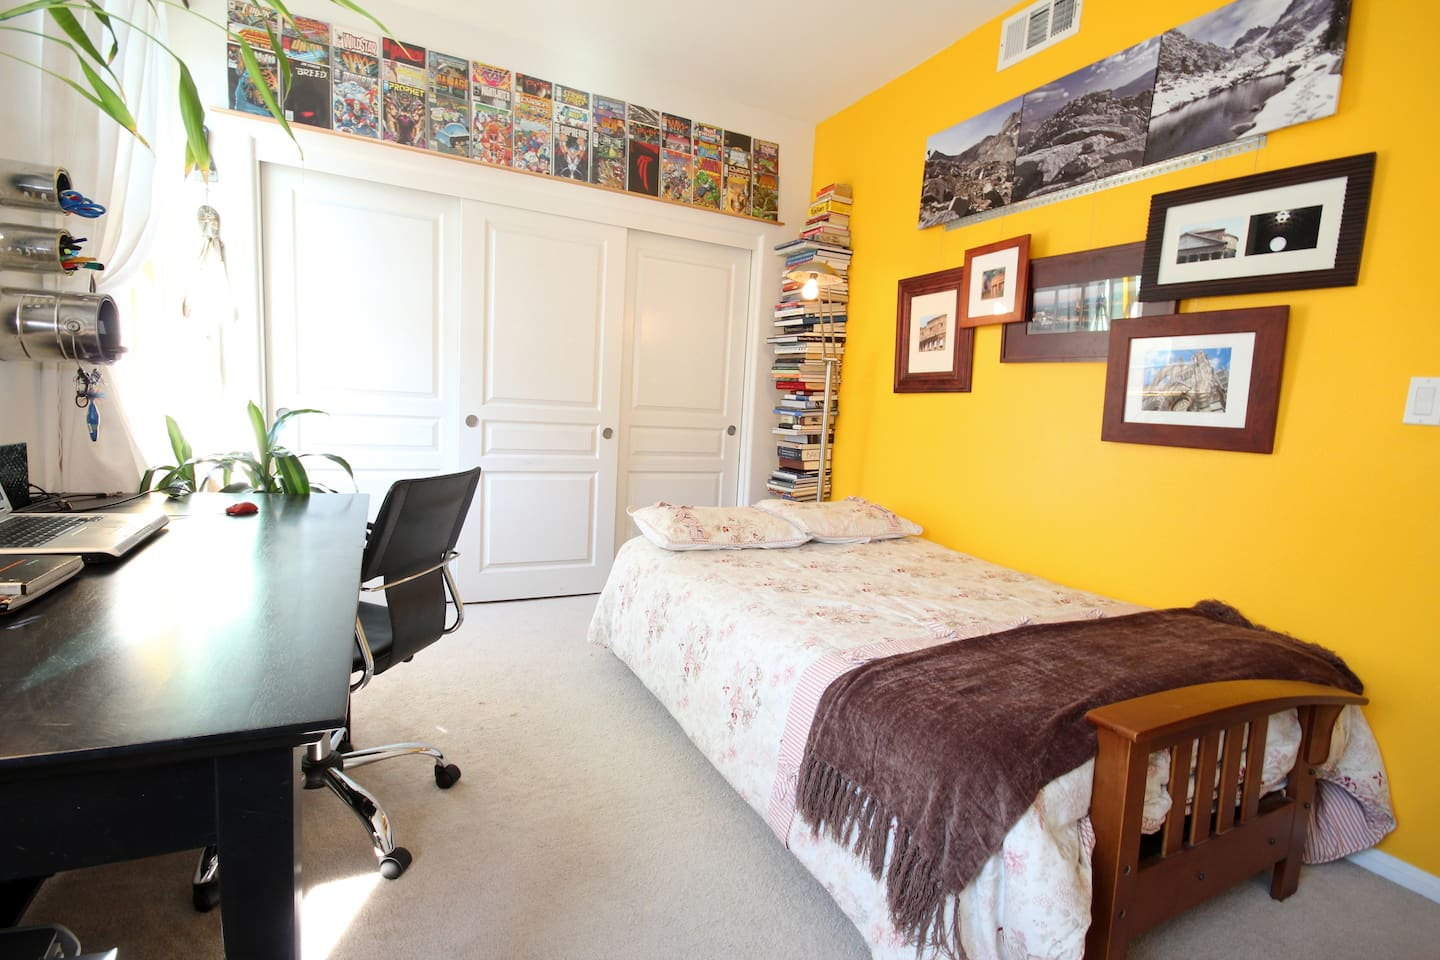 Your private room with a cozy and quite comfortable bed, a desk and closet space :-)